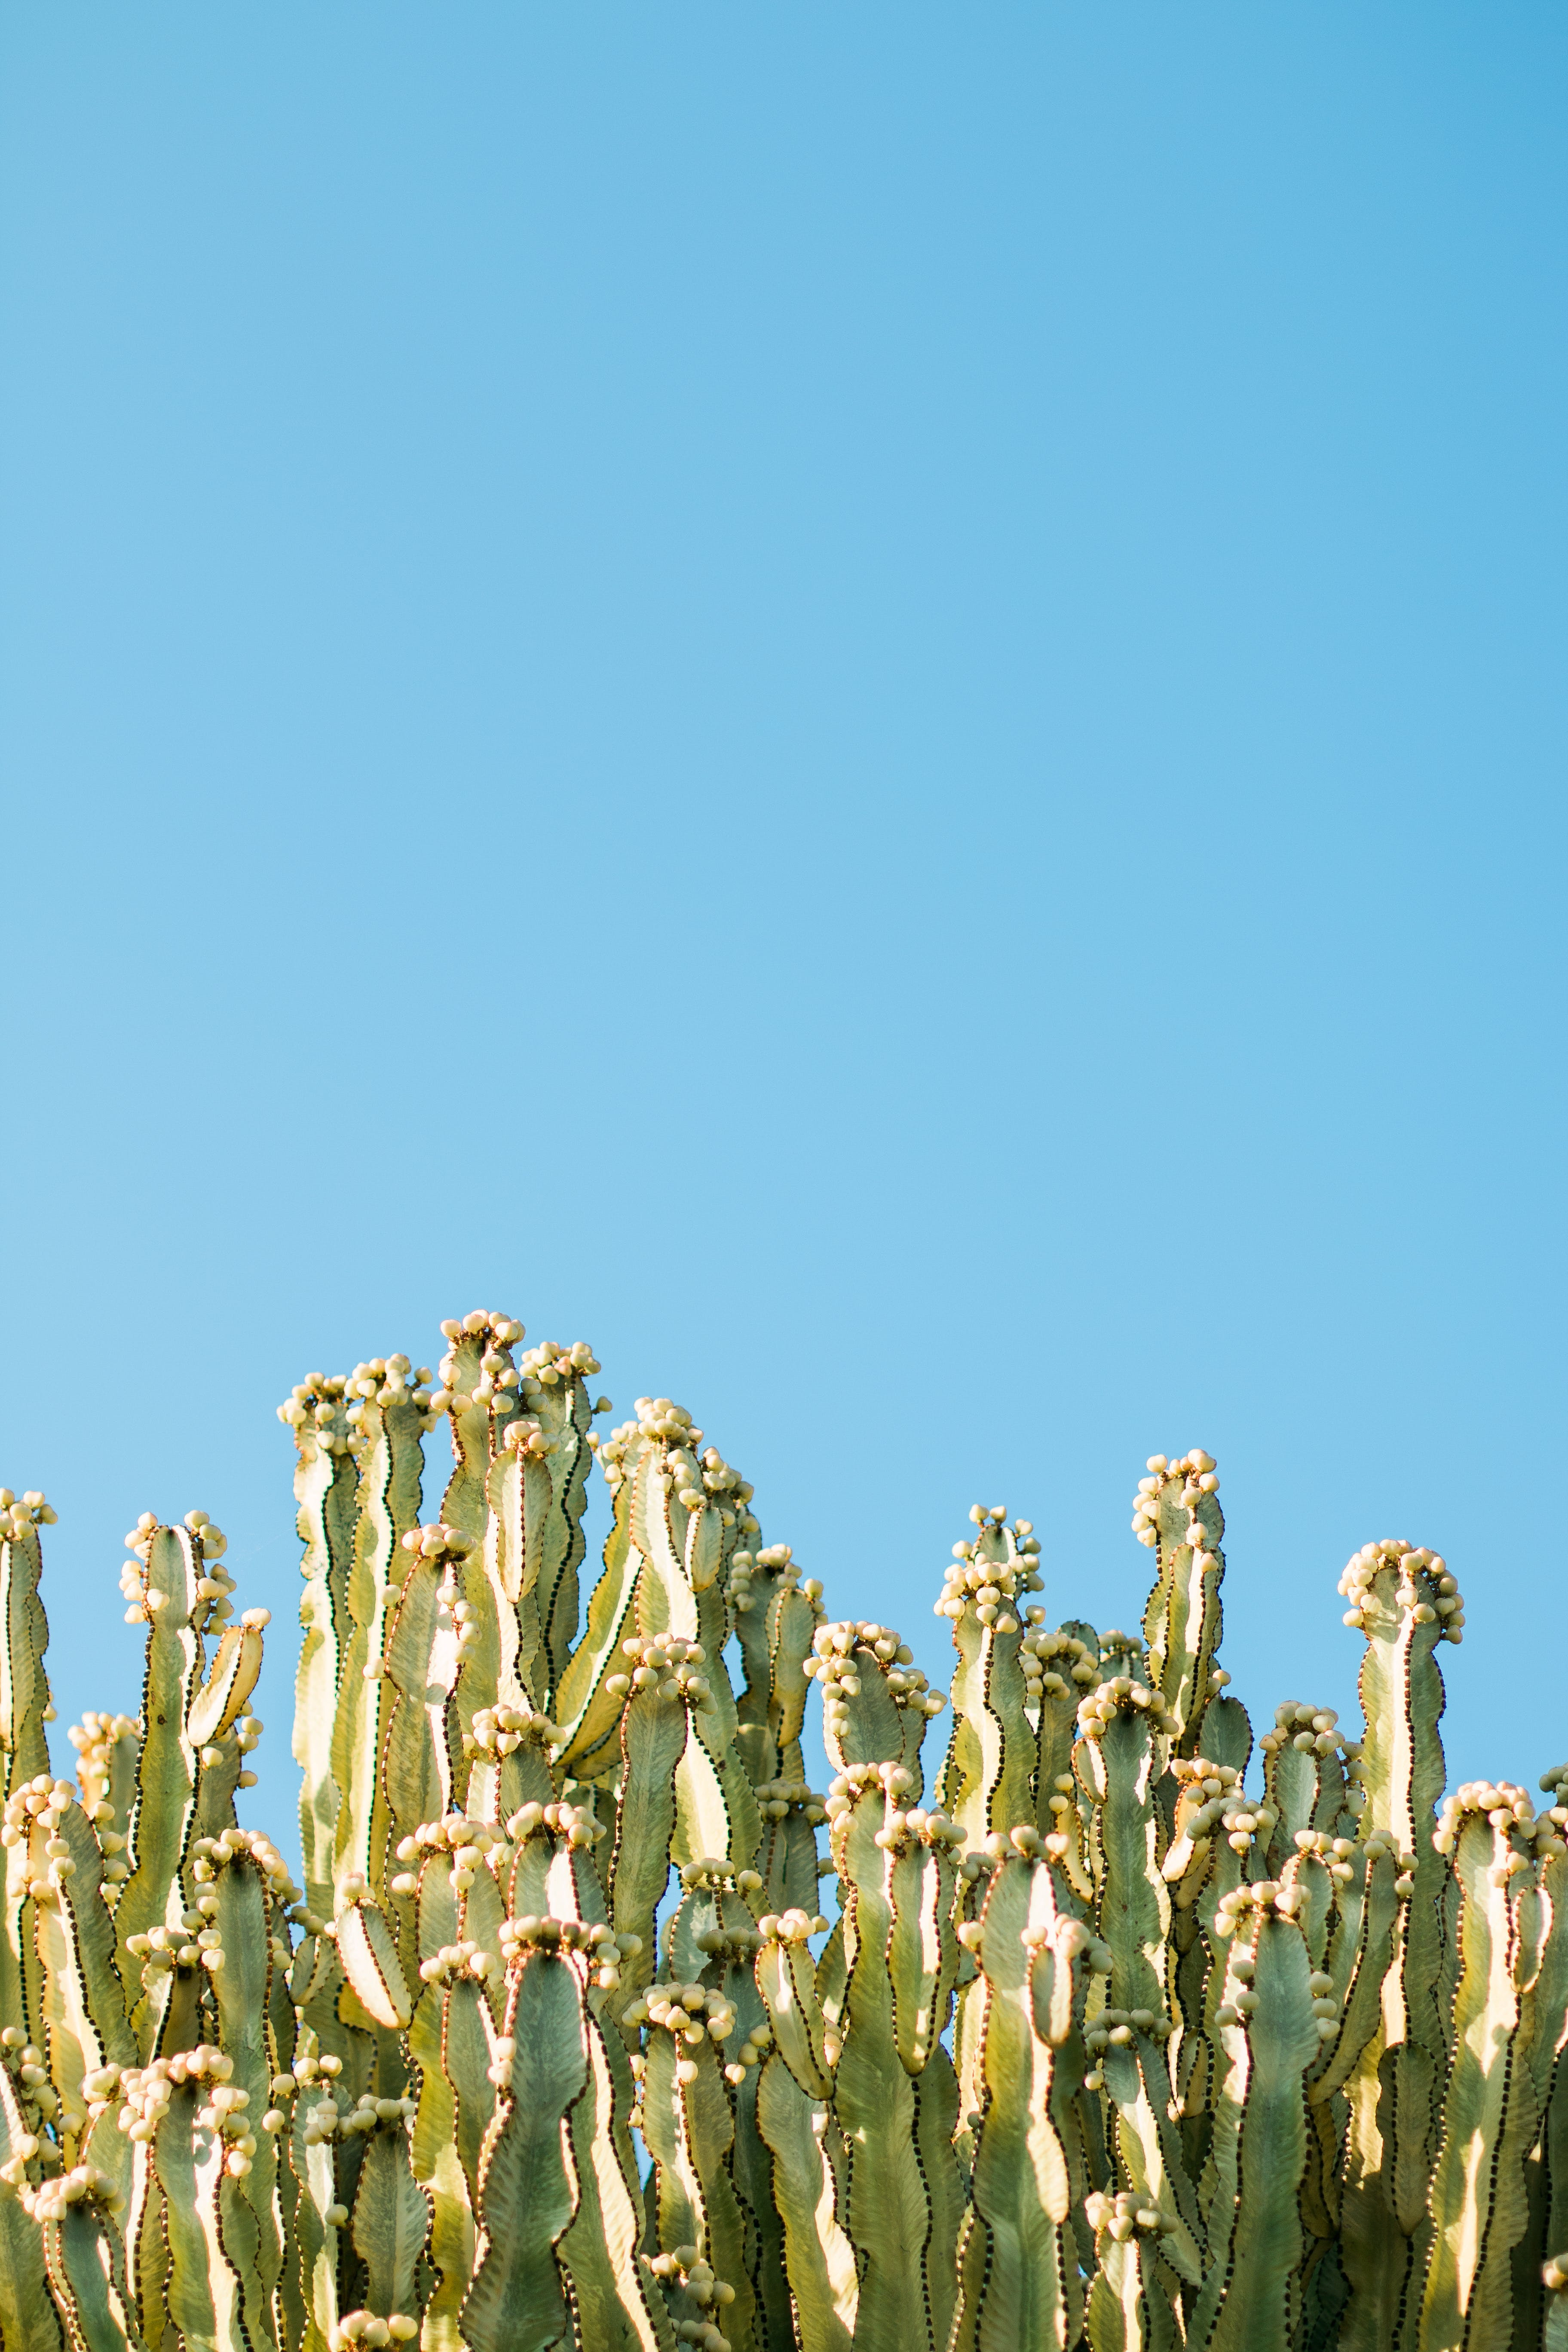 Cacti Plants and Blue Sky